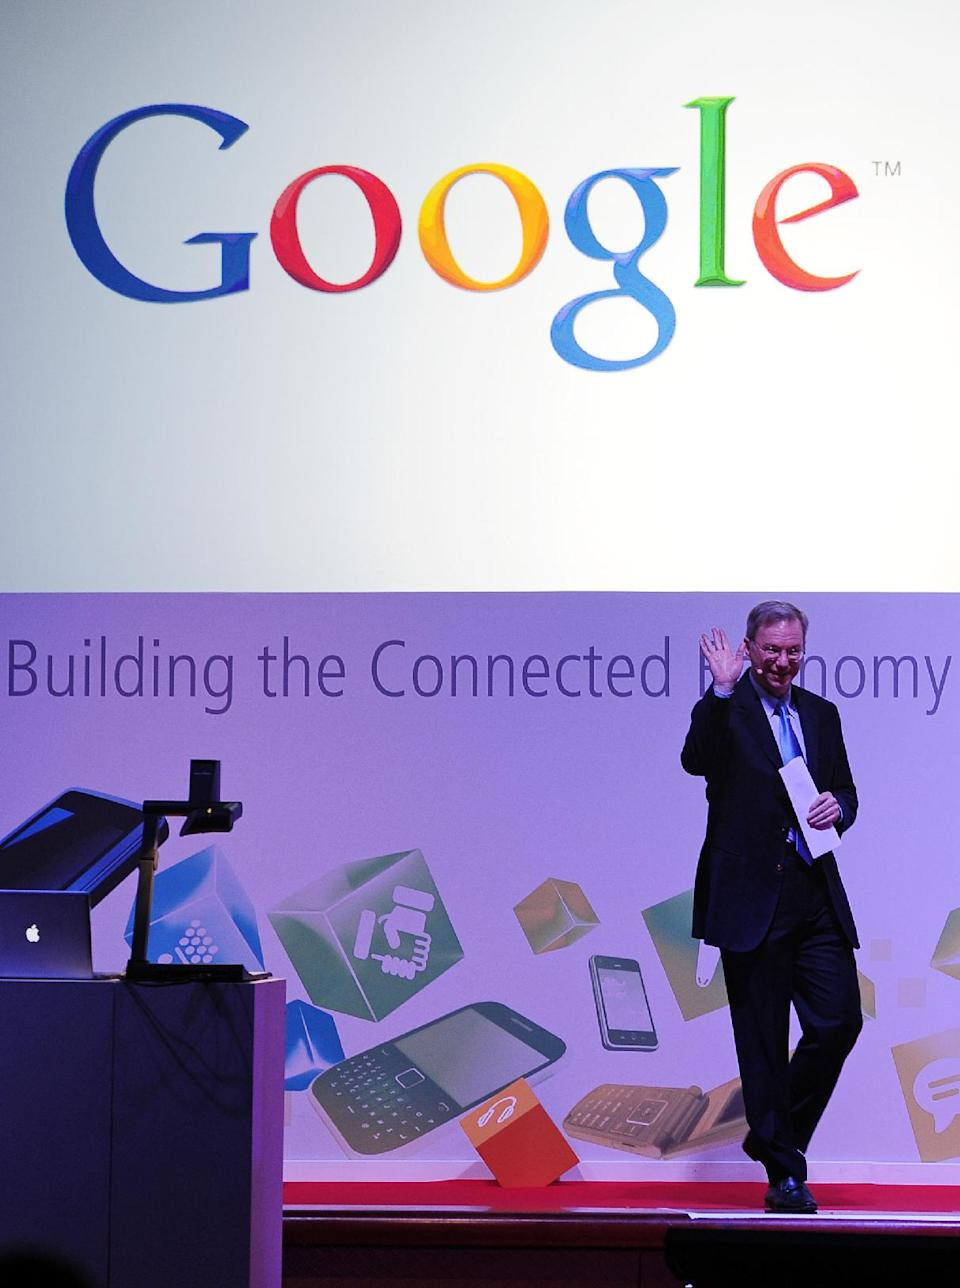 CEO of google Eric Schmidt during a conference at the Mobile World Congress, the world's largest mobile phone trade show, in Barcelona, Spain, Tuesday, Feb. 28, 2012. (AP Photo/Manu Fernandez)